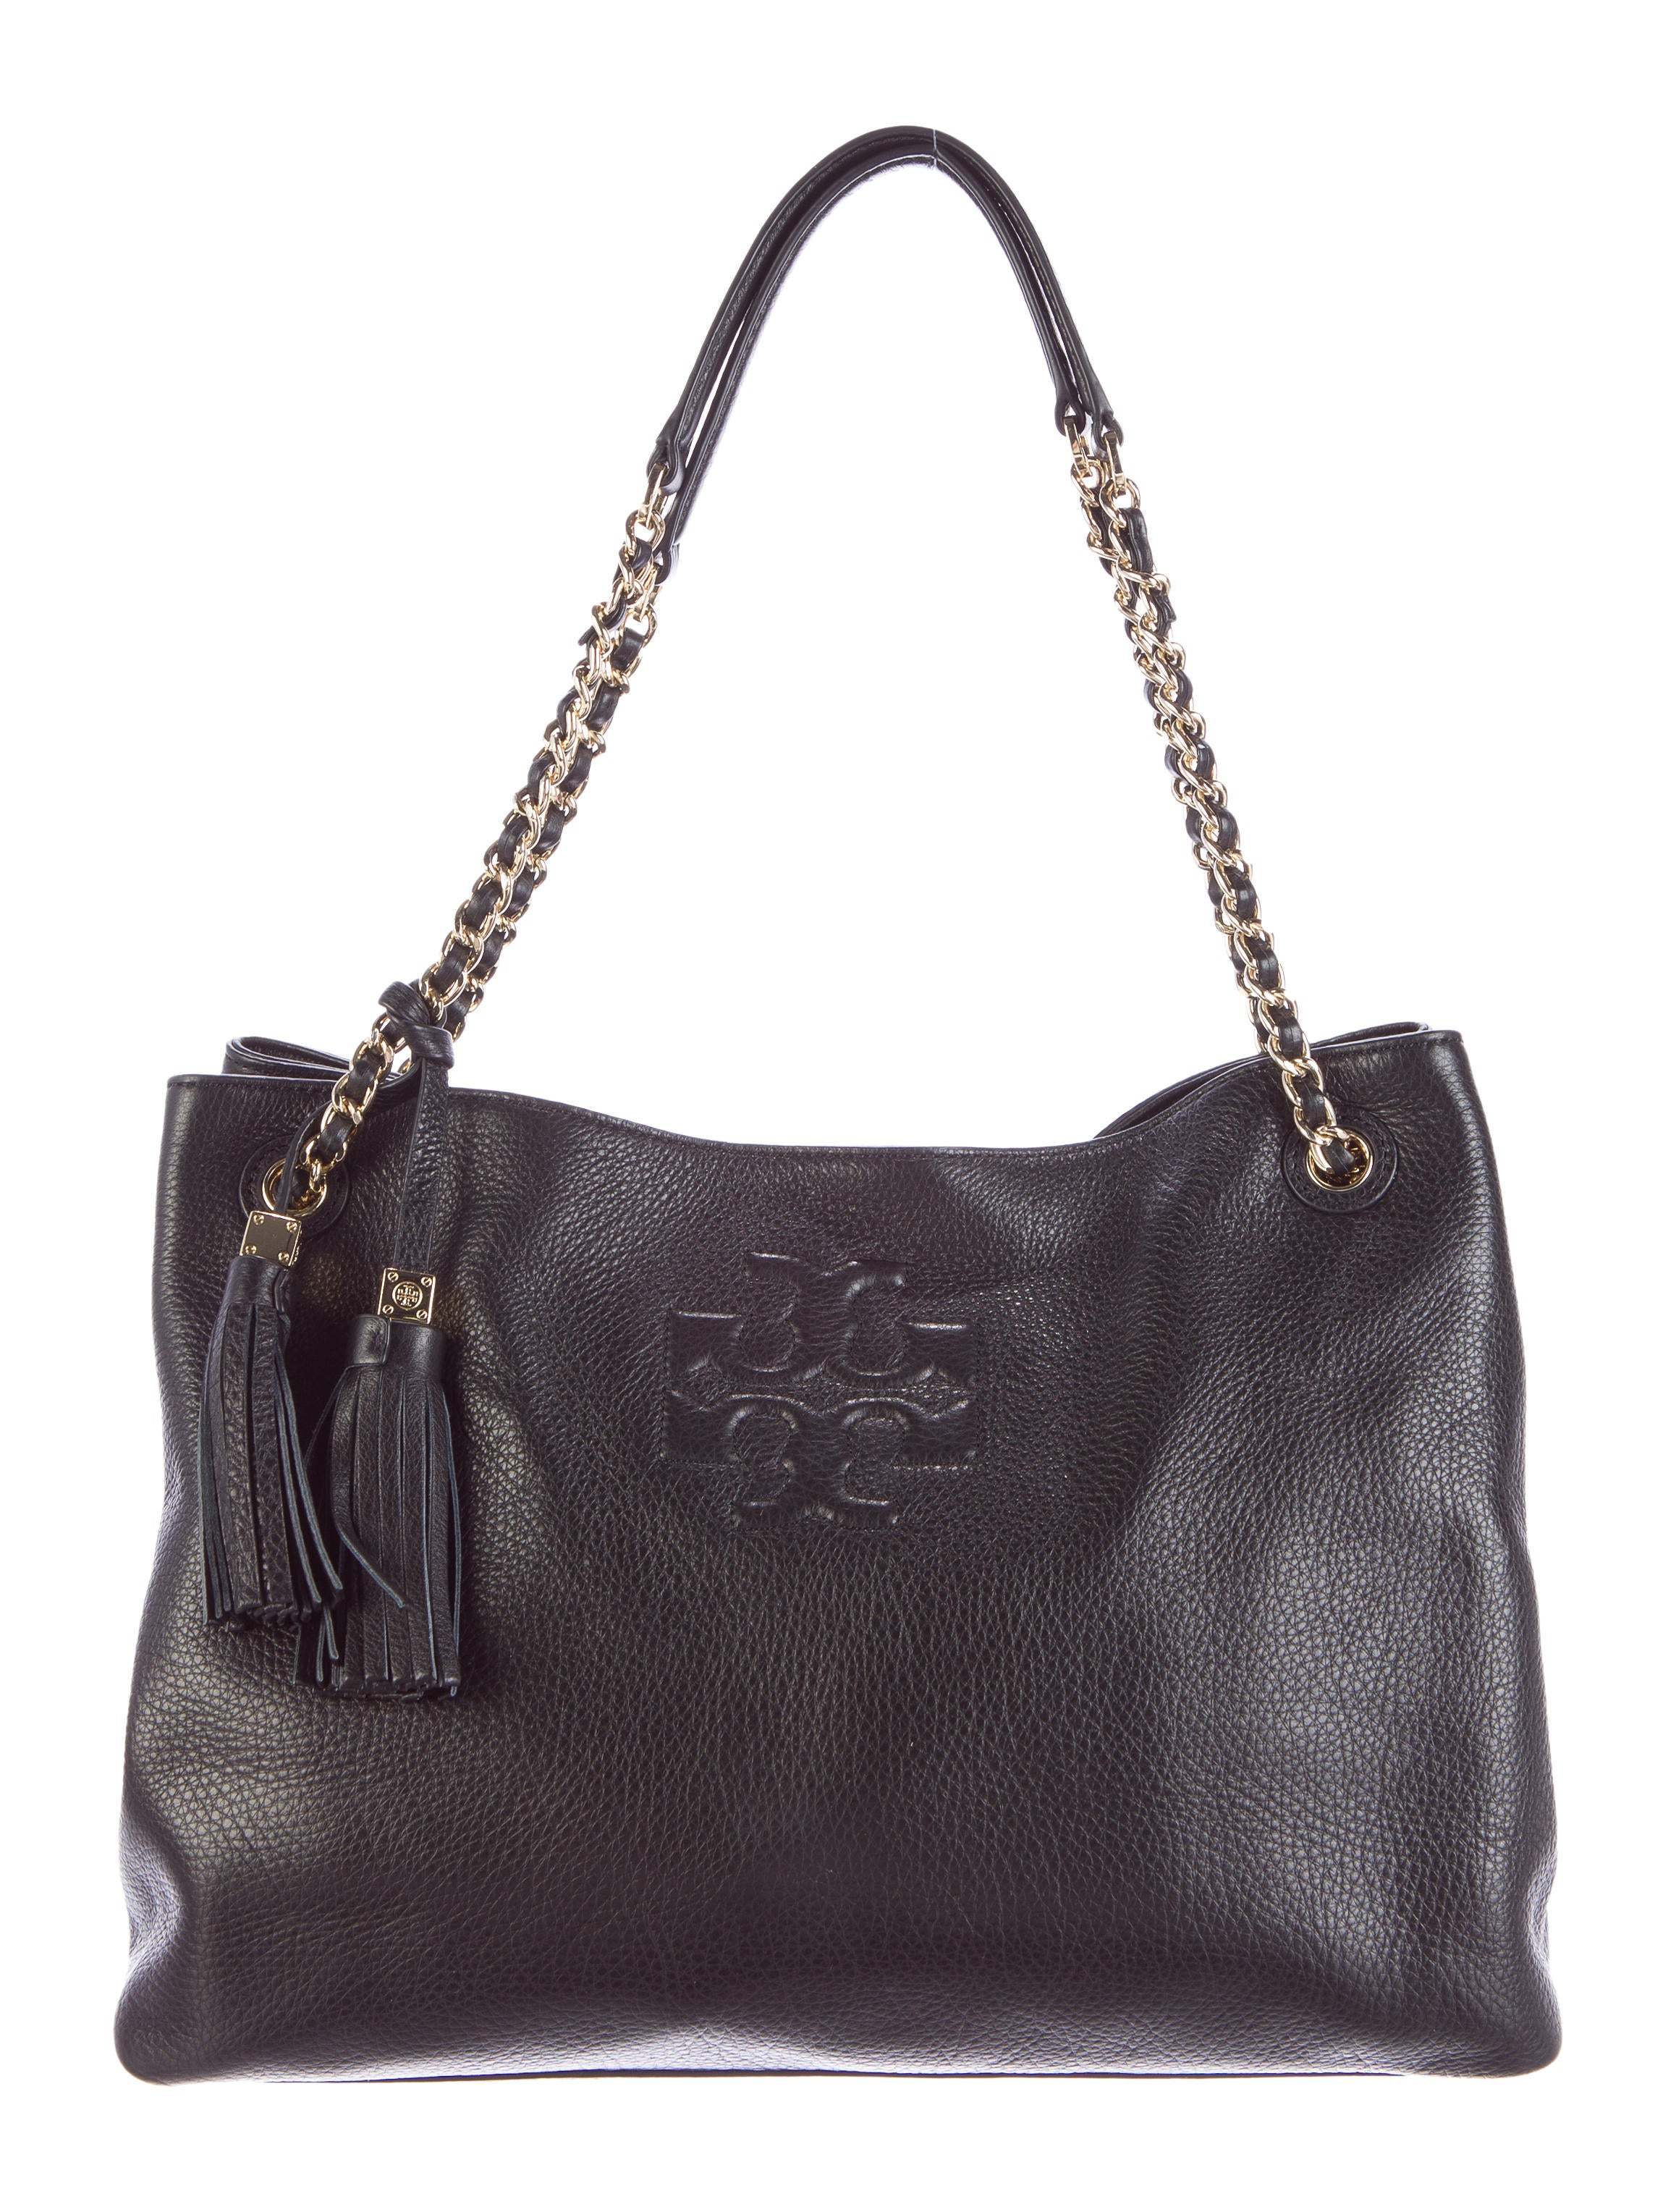 82f5bac4f28 Tory Burch Thea Chain Shoulder Slouchy Tote - Handbags - WTO73191 ...